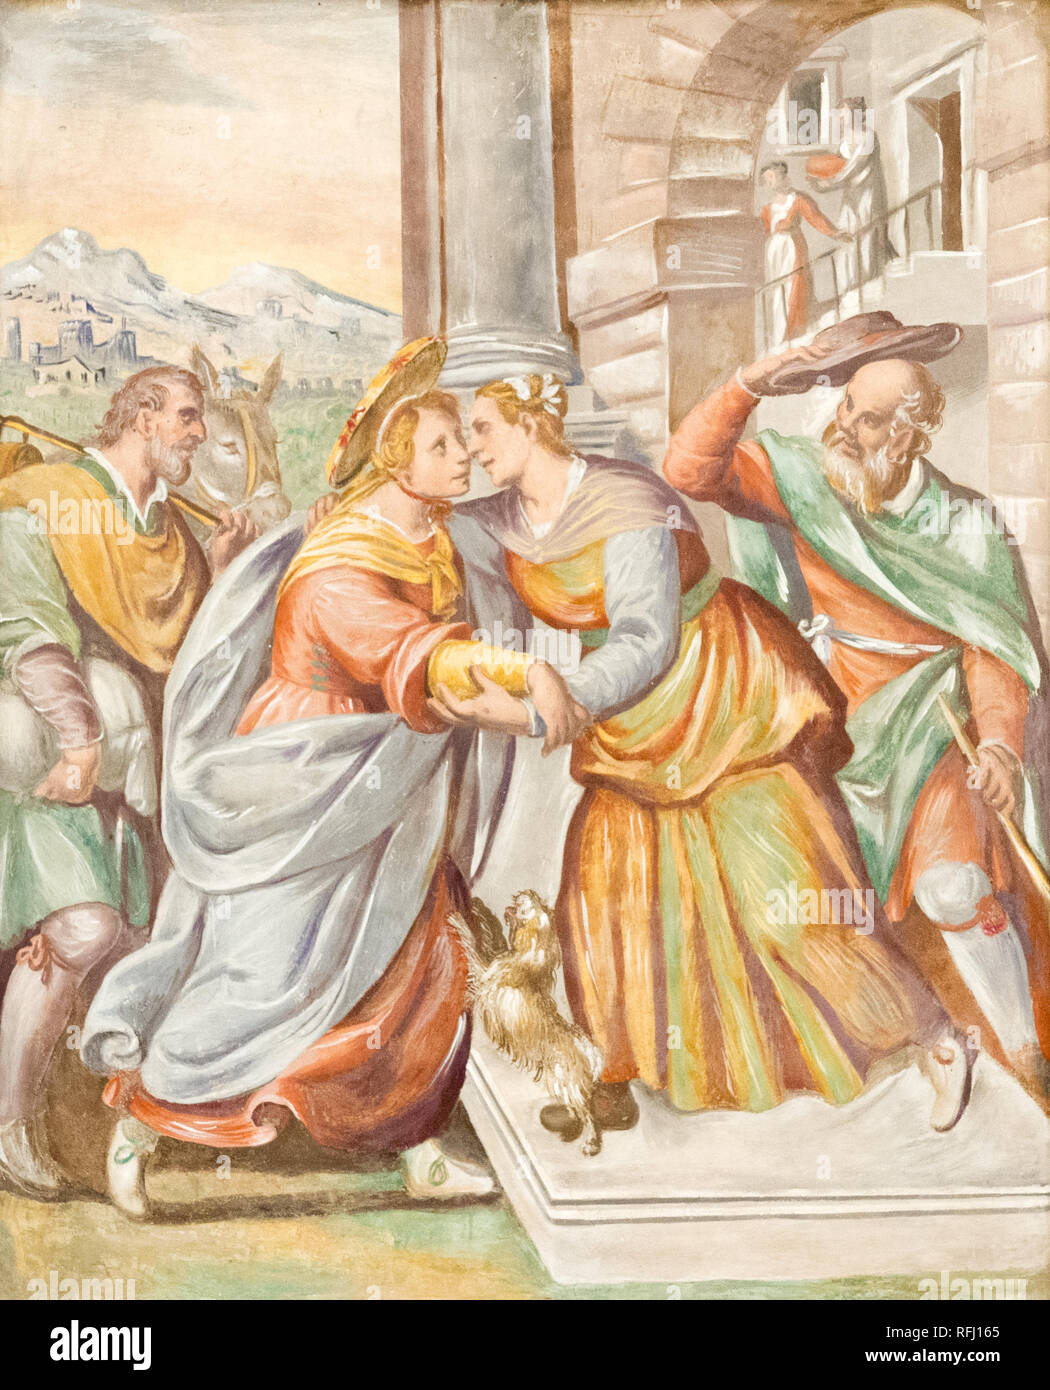 The fresco of the visitation of Virgin Mary to Elizabeth in the Salesian church 'Santa Maria delle Grazie' - Holy Mary of the Grace. - Stock Image